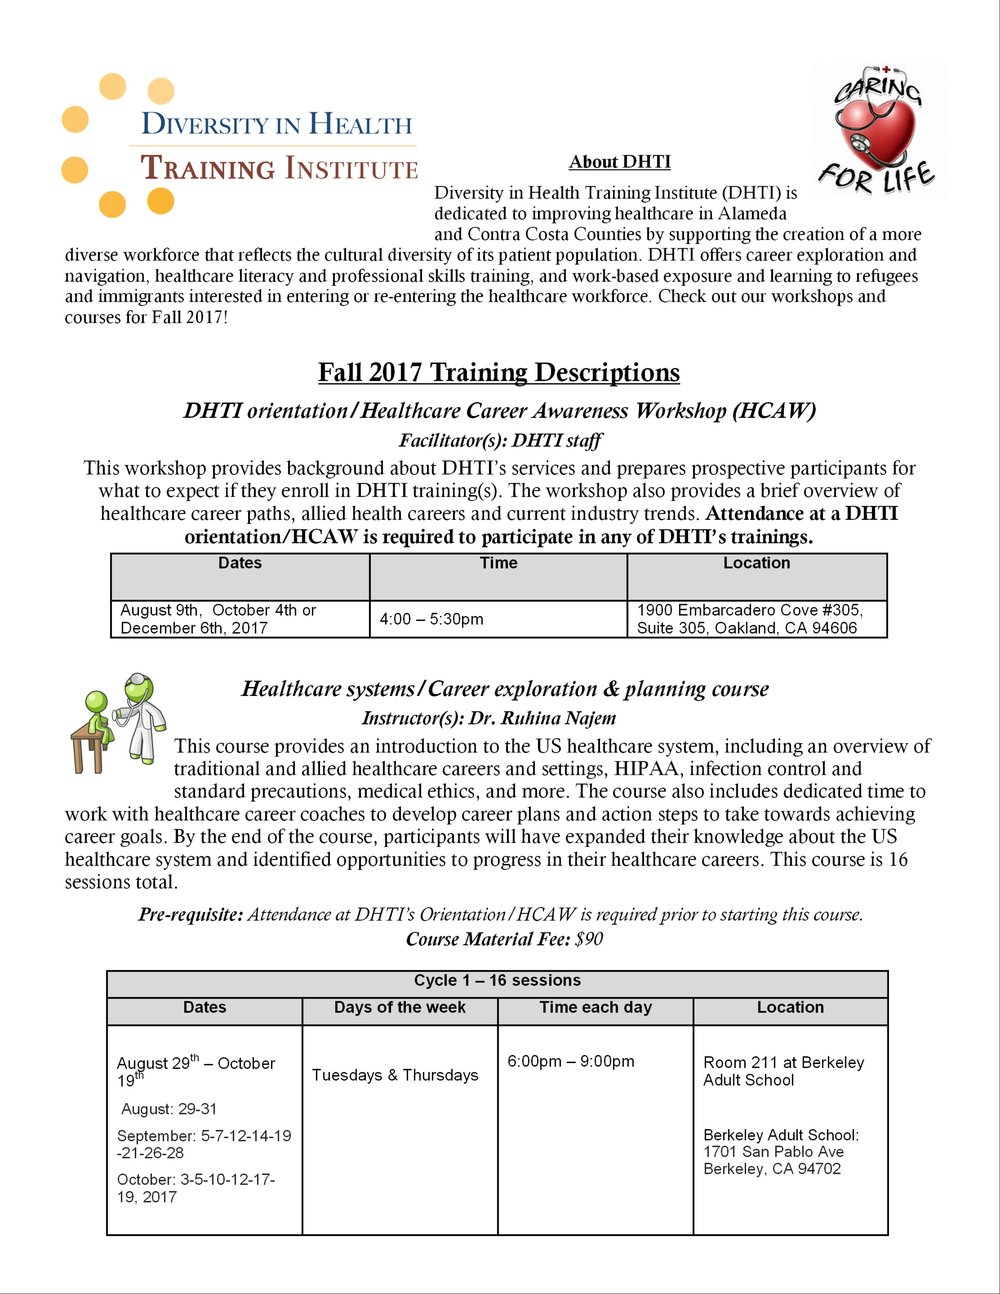 Healthcare Awareness Workshop